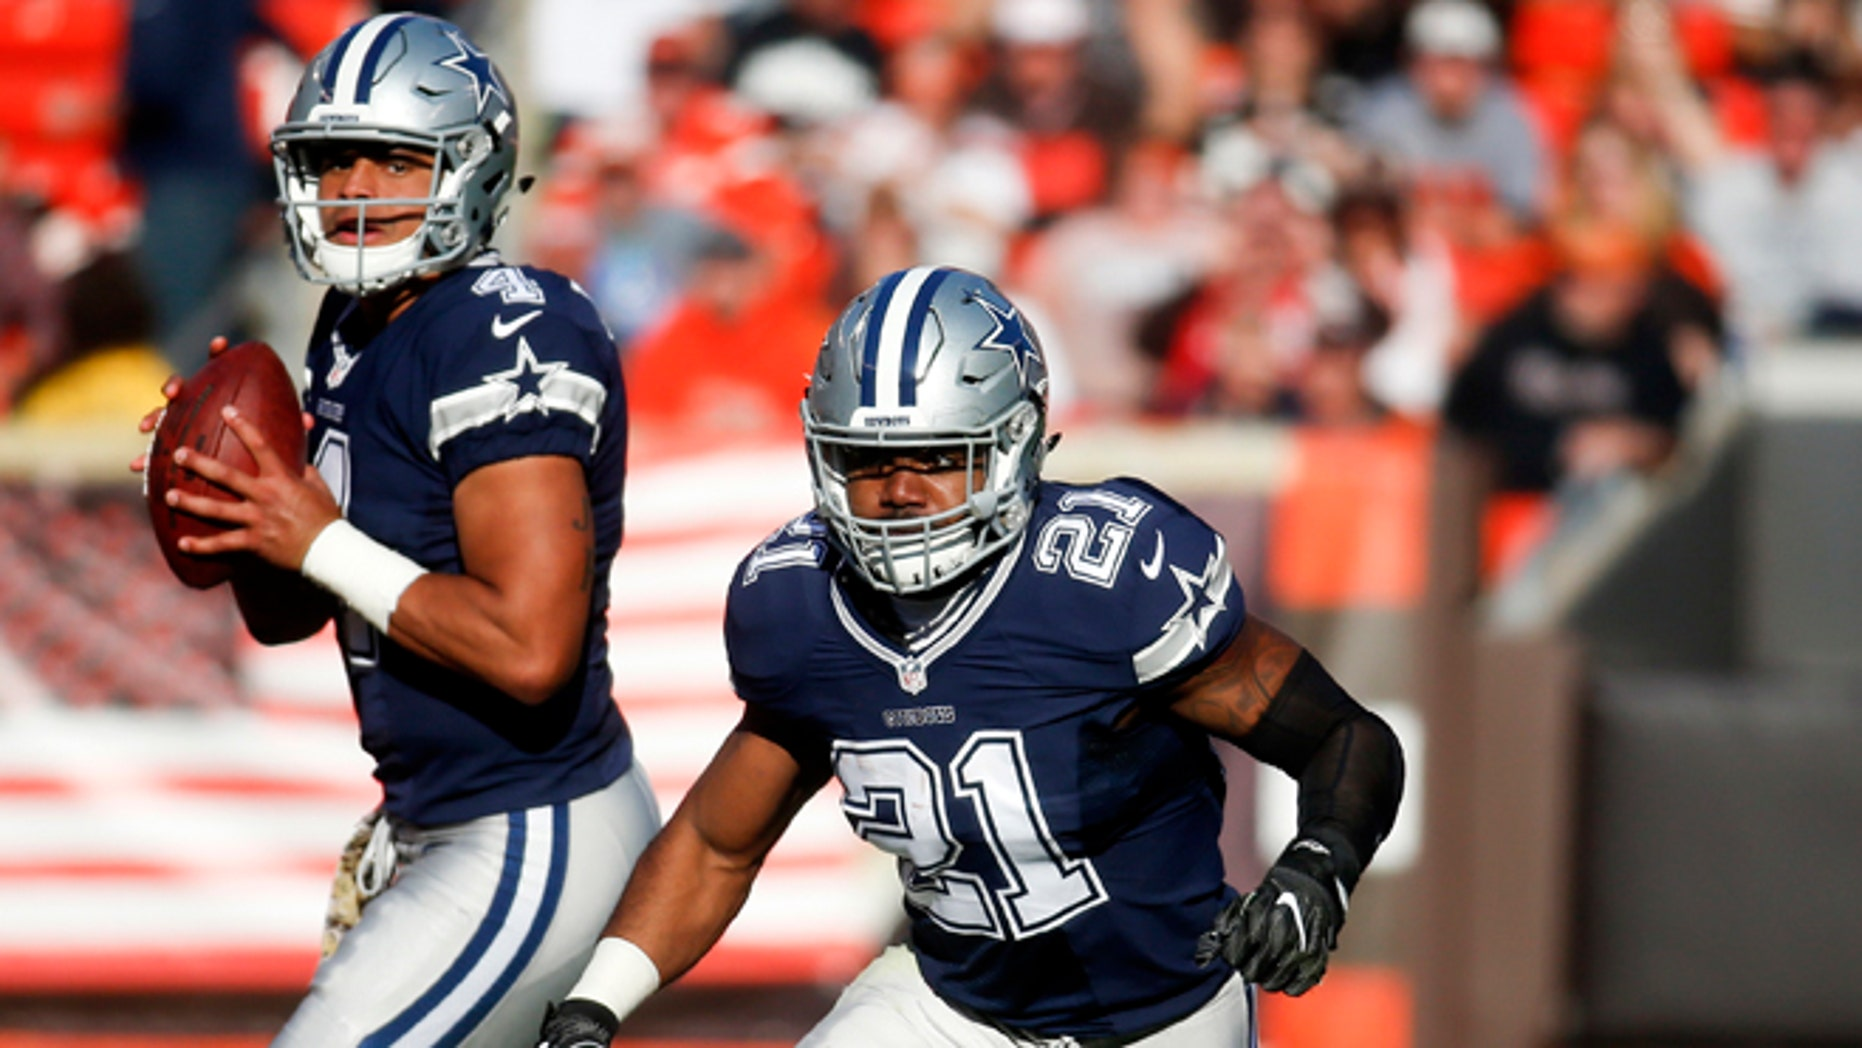 Dallas Cowboys running back Ezekiel Elliott (21) runs on a play as quarterback Dak Prescott (4) looks to pass in the second half of an NFL football game against the Cleveland Browns, Sunday, Nov. 6, 2016, in Cleveland. (AP Photo/Ron Schwane)